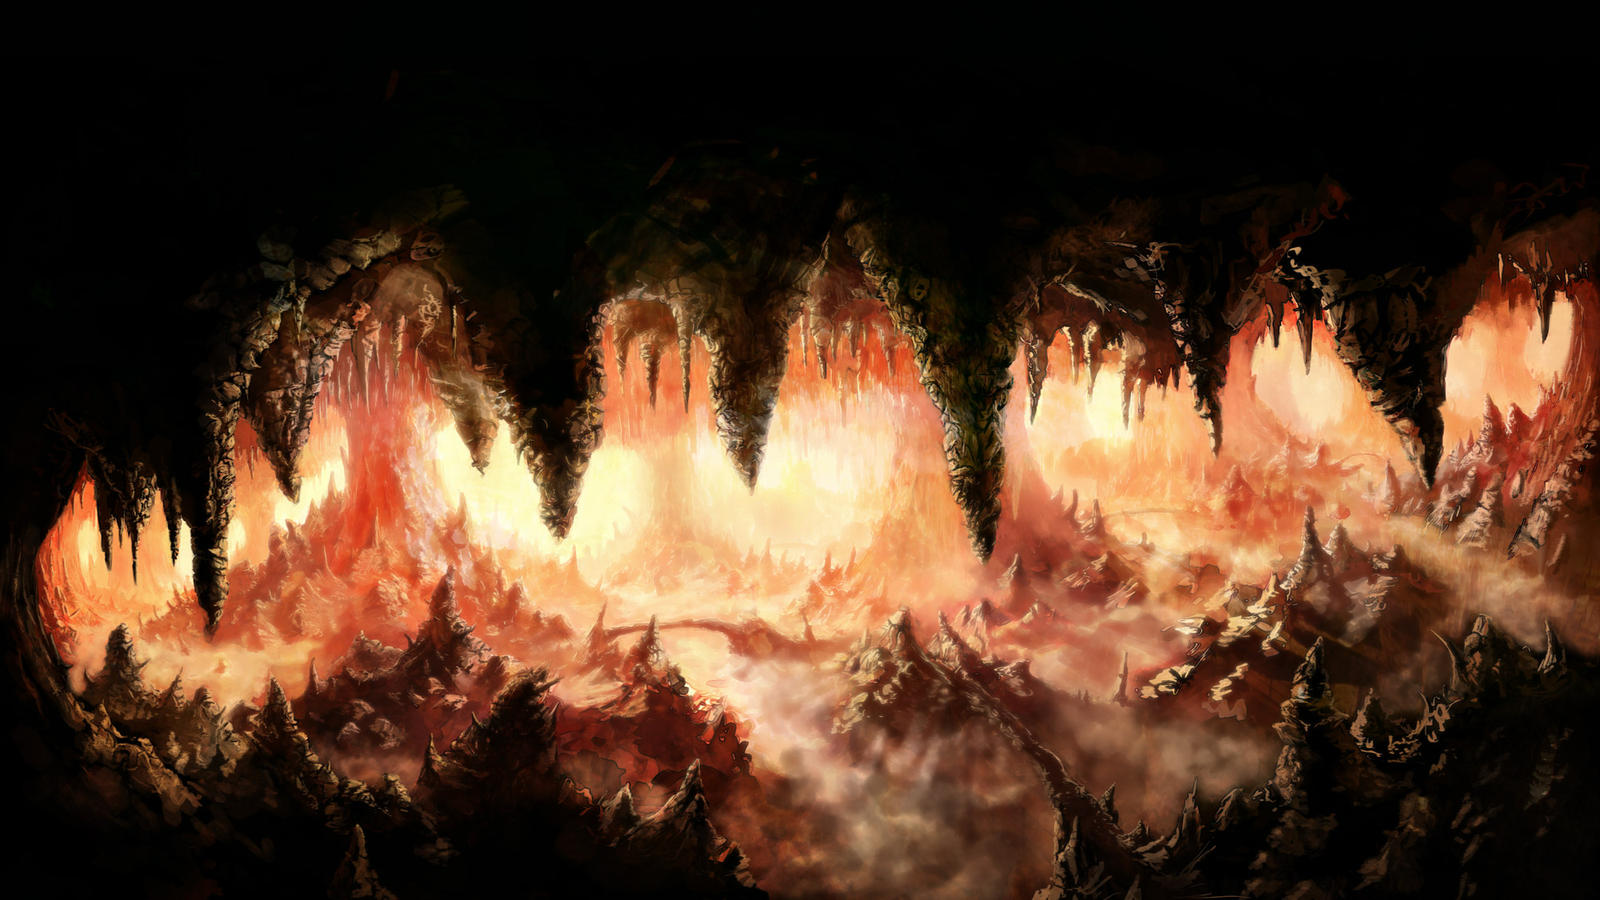 Hell Cave by NatMonney